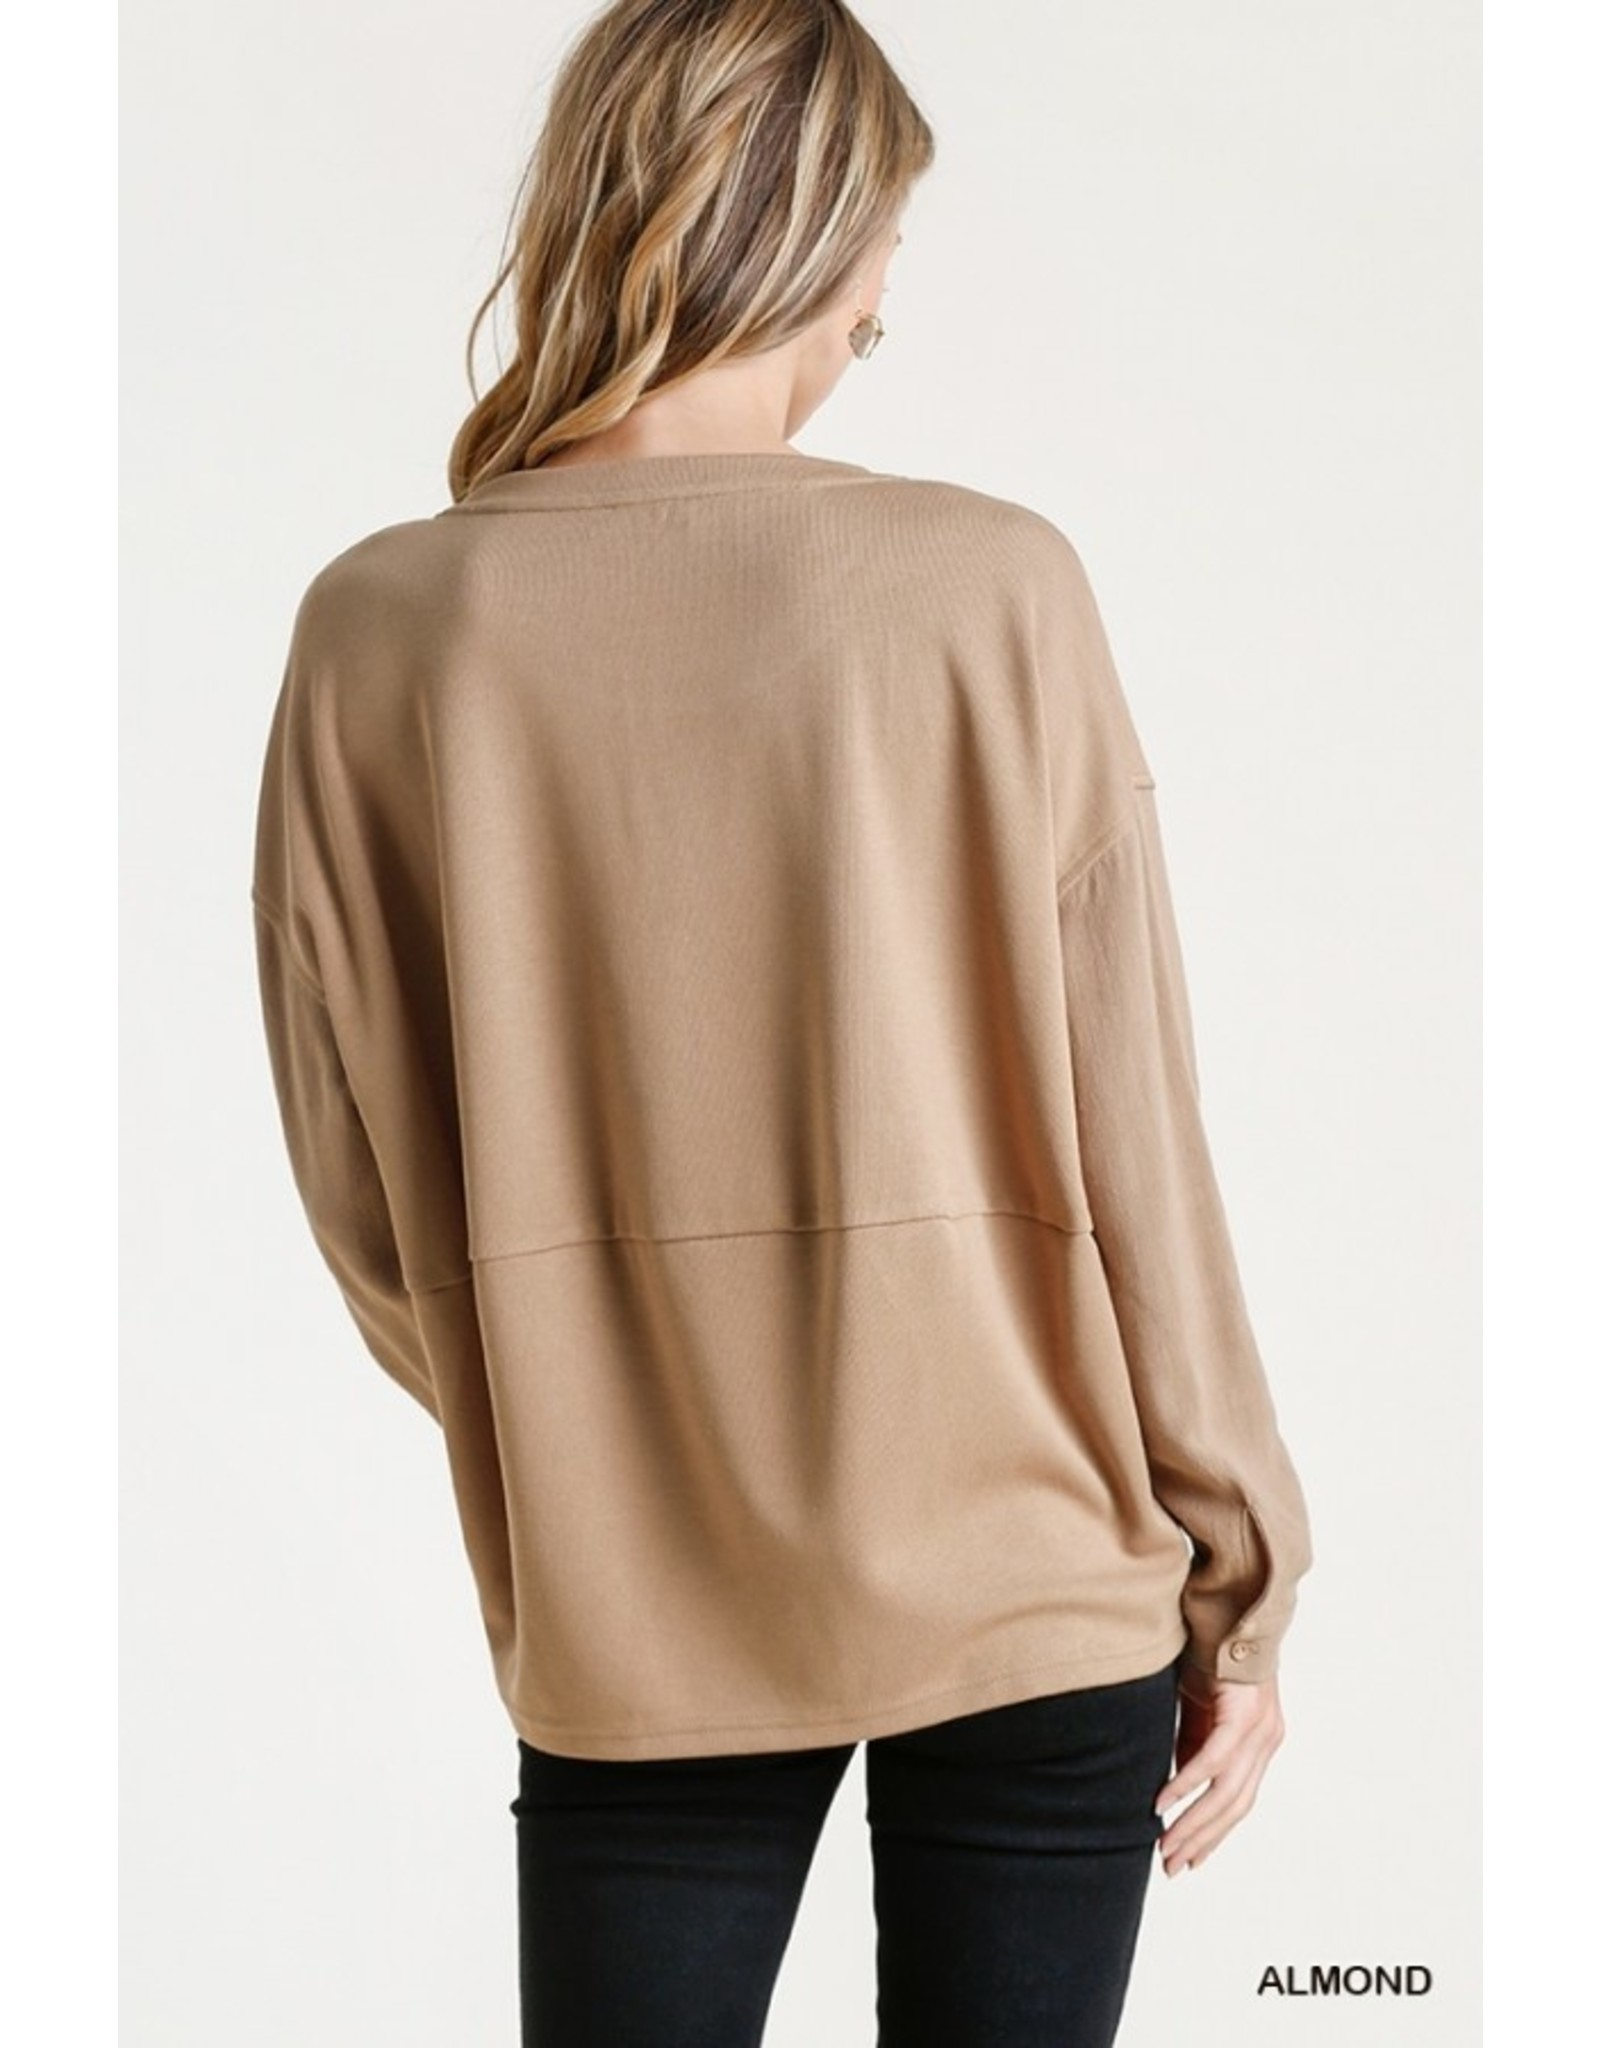 Long Sleeve Pullover Top with Button Cuffs